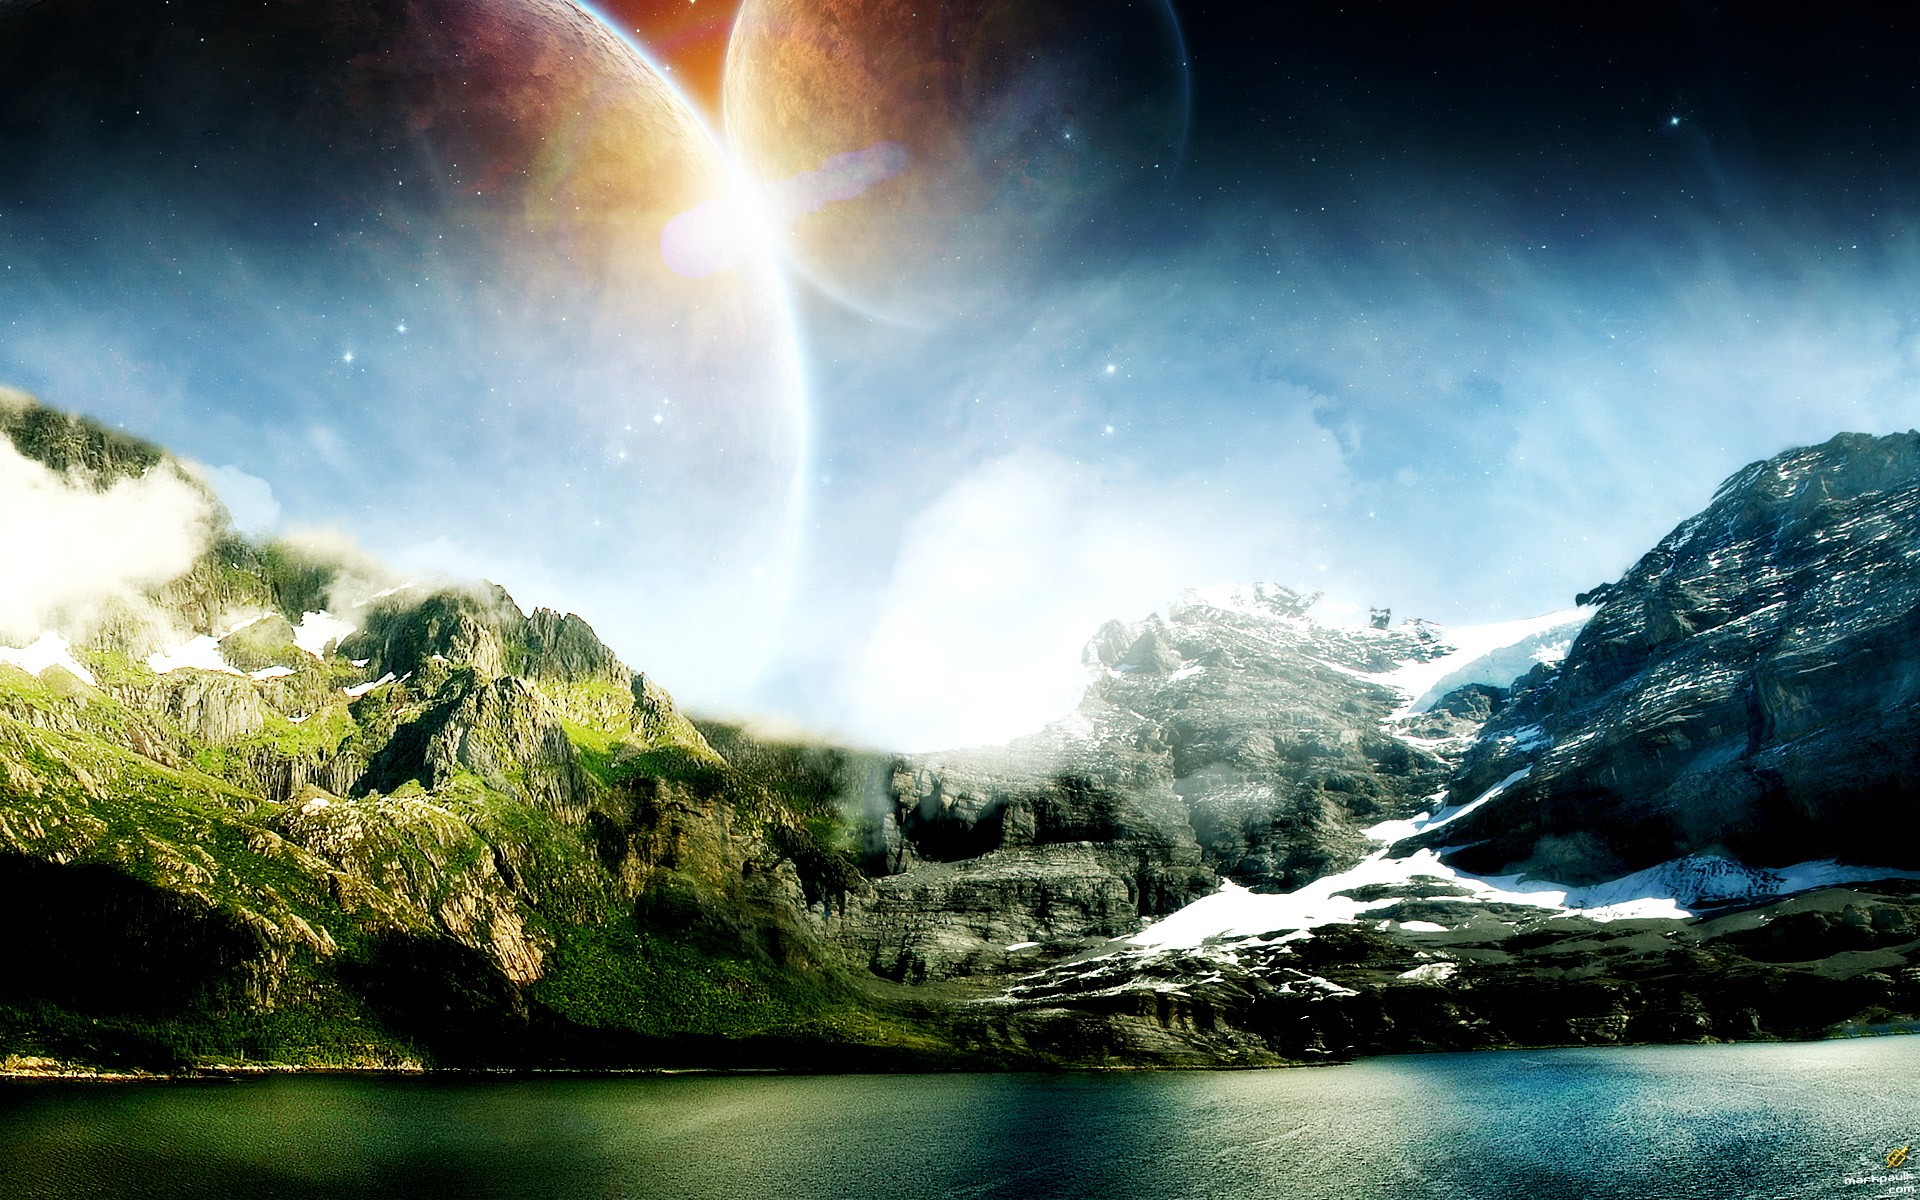 Abstract 3d Wallpapers Free Download Landscapes Planets Science Fiction Wallpaper 1920x1200